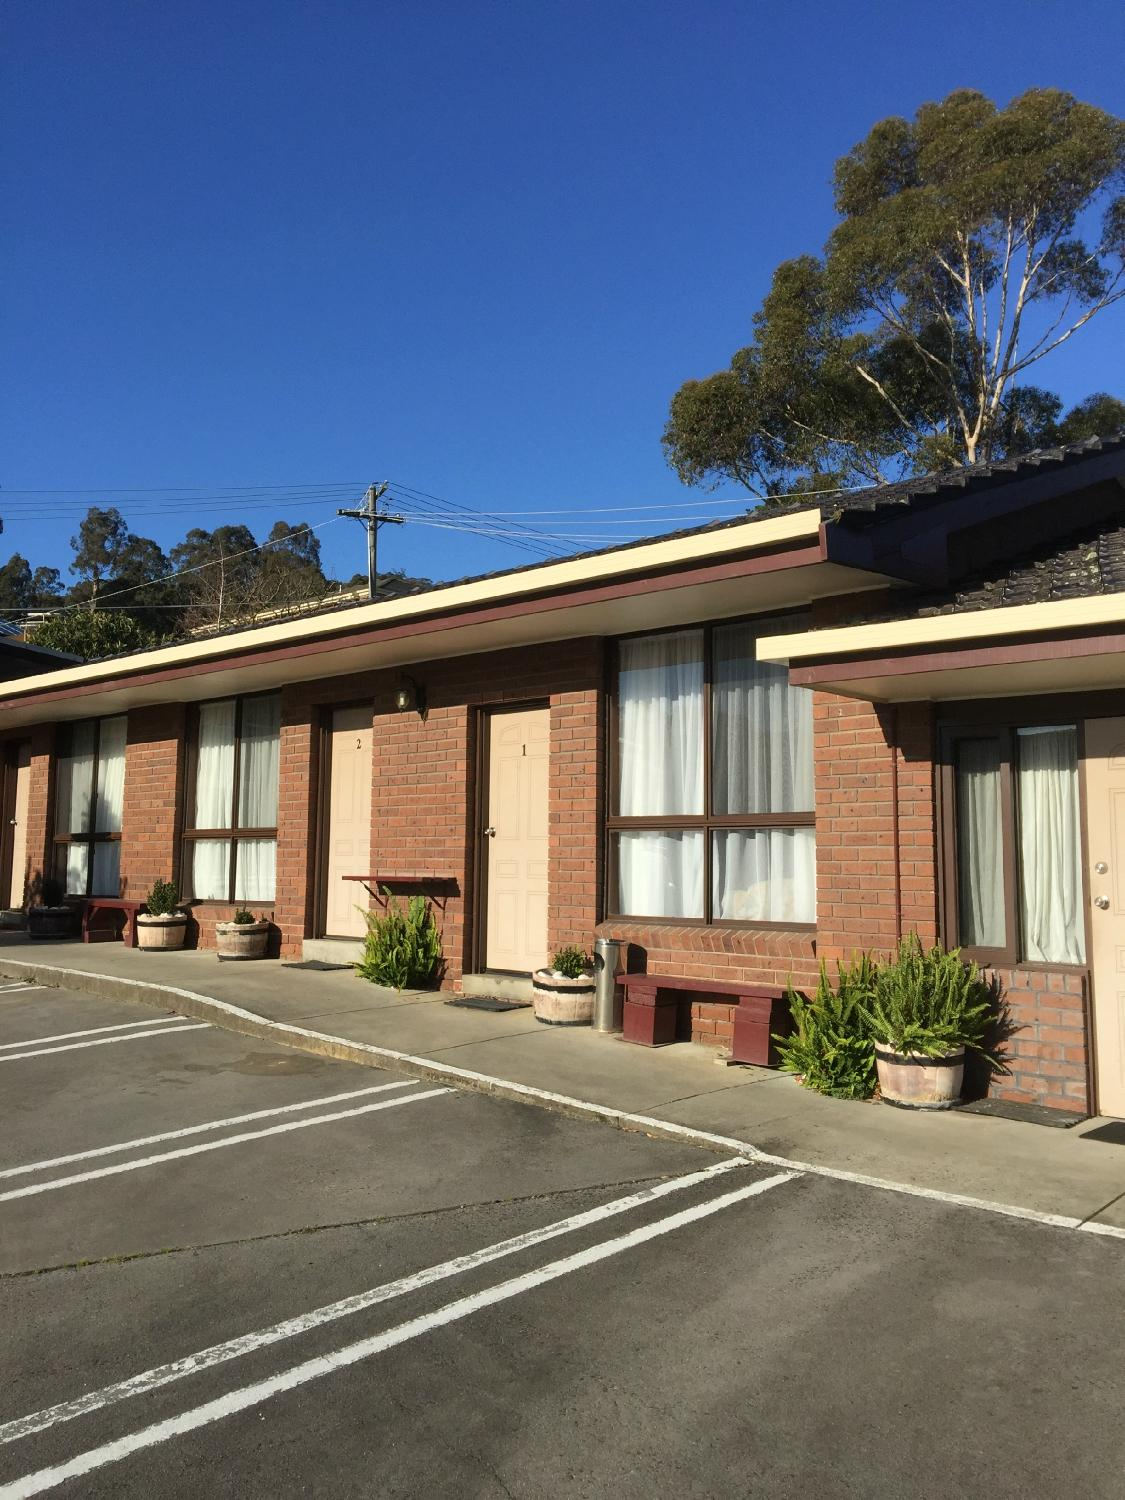 Golden Chain Lilydale Motor Inn